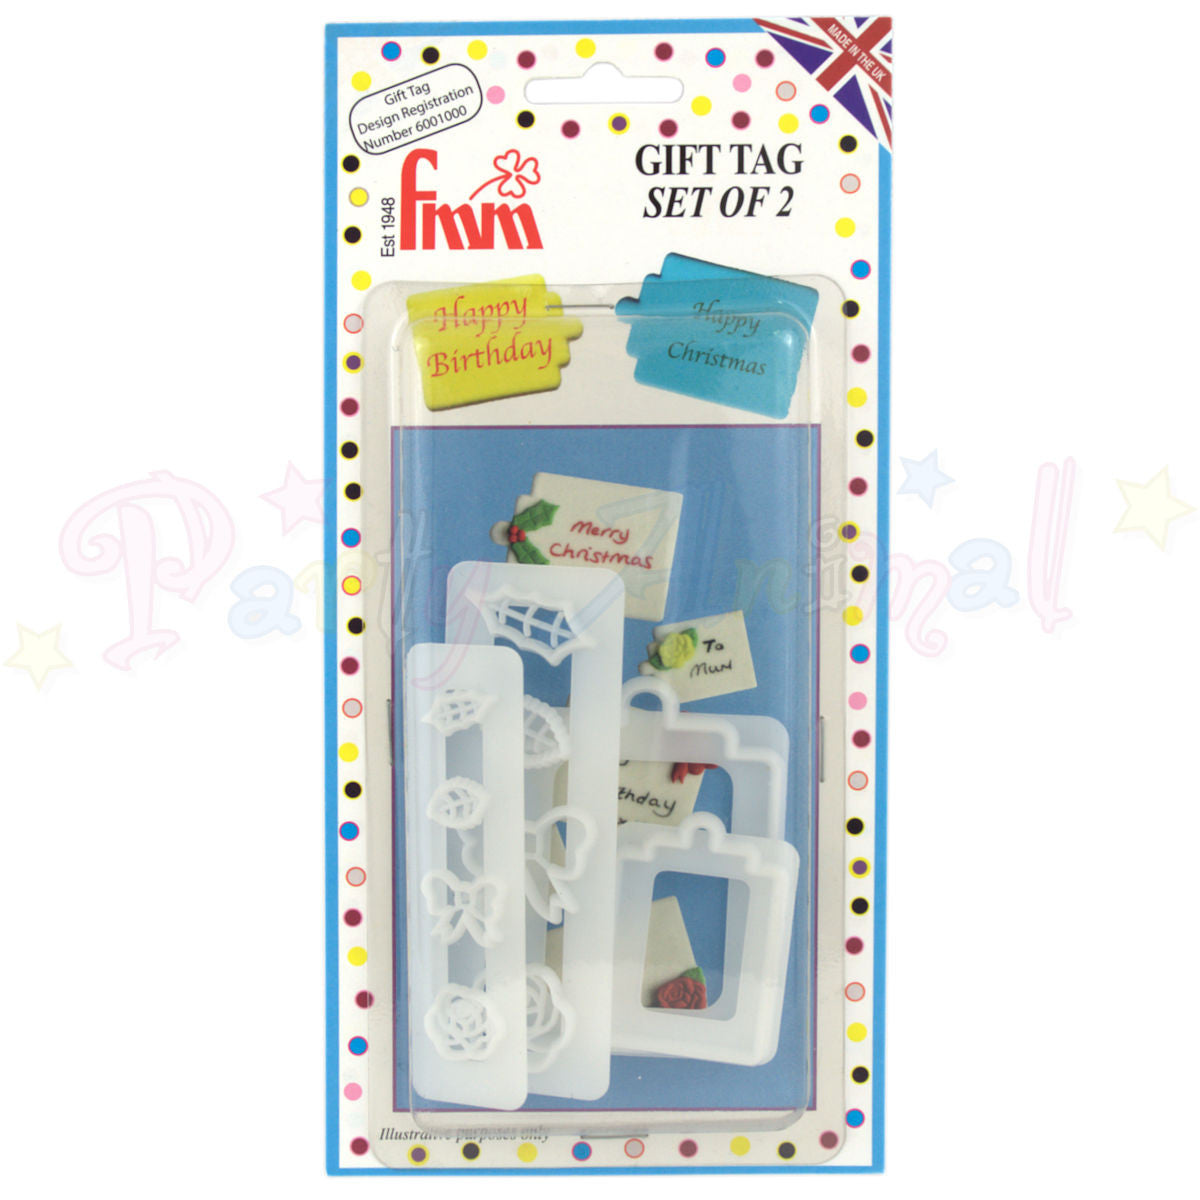 FMM Sugarcraft - Gift Tag Cutter Set of 2